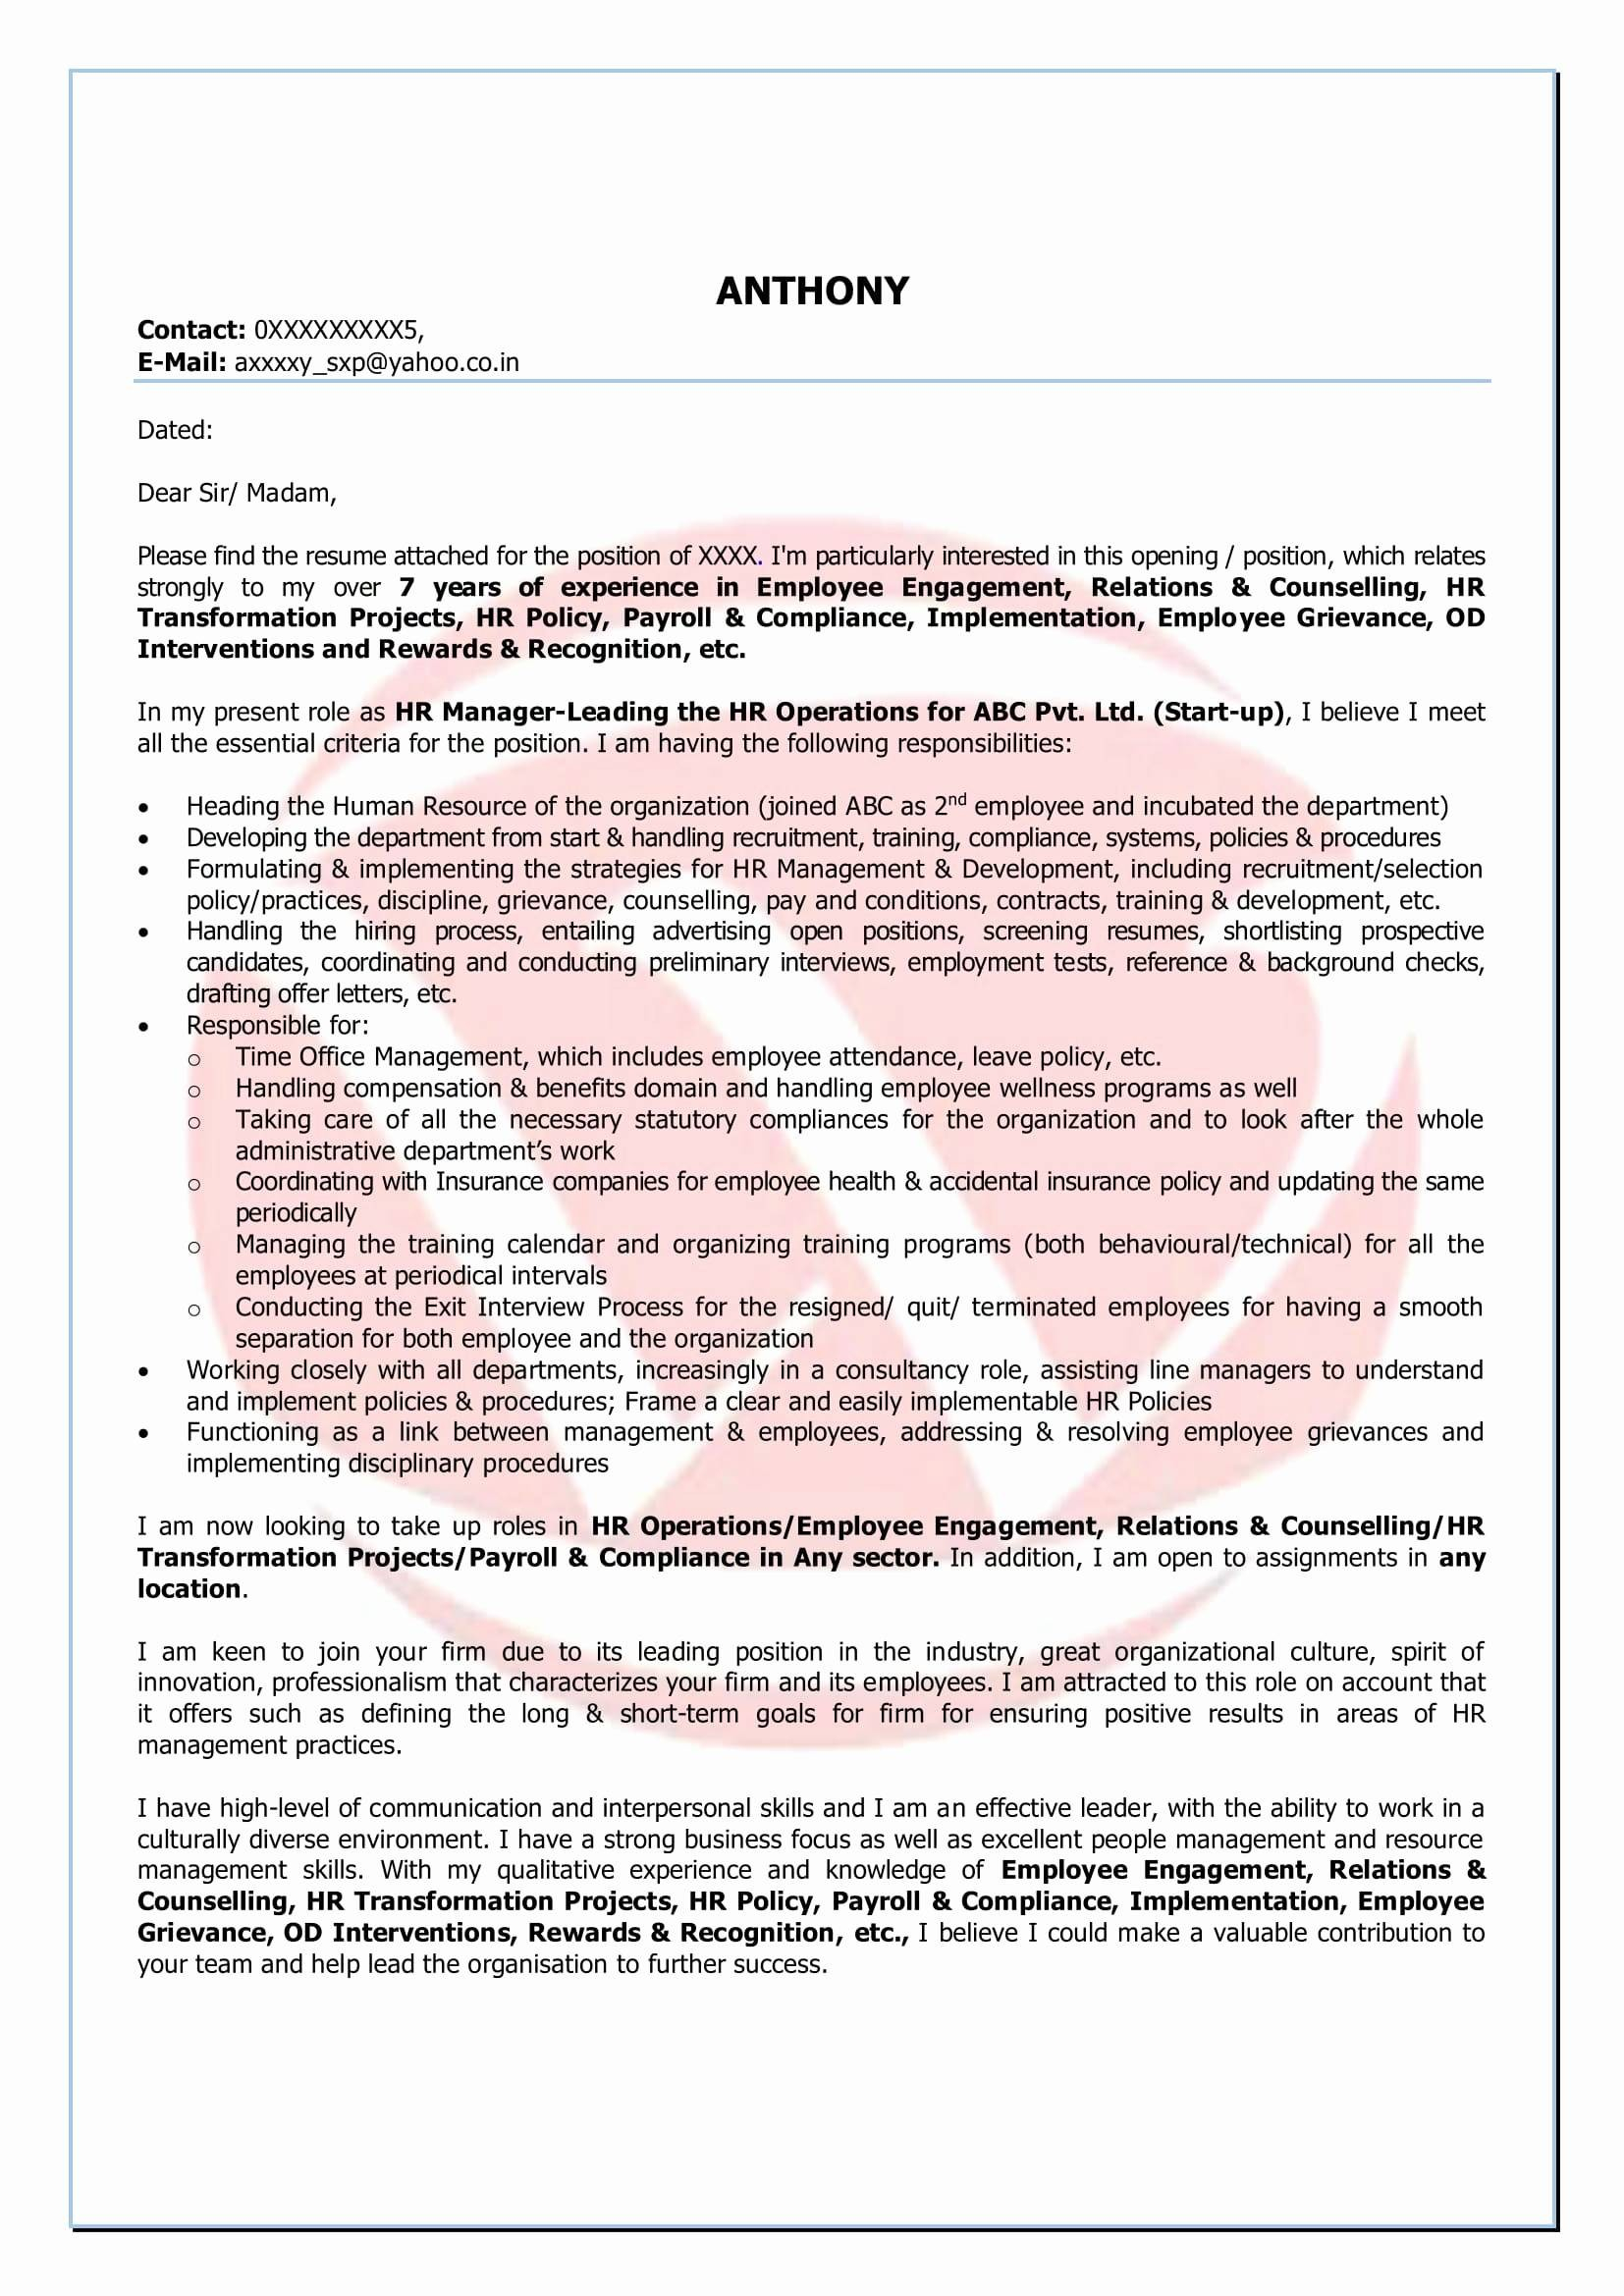 Free Breach Of Contract Letter Template - Template for Grievance Letter